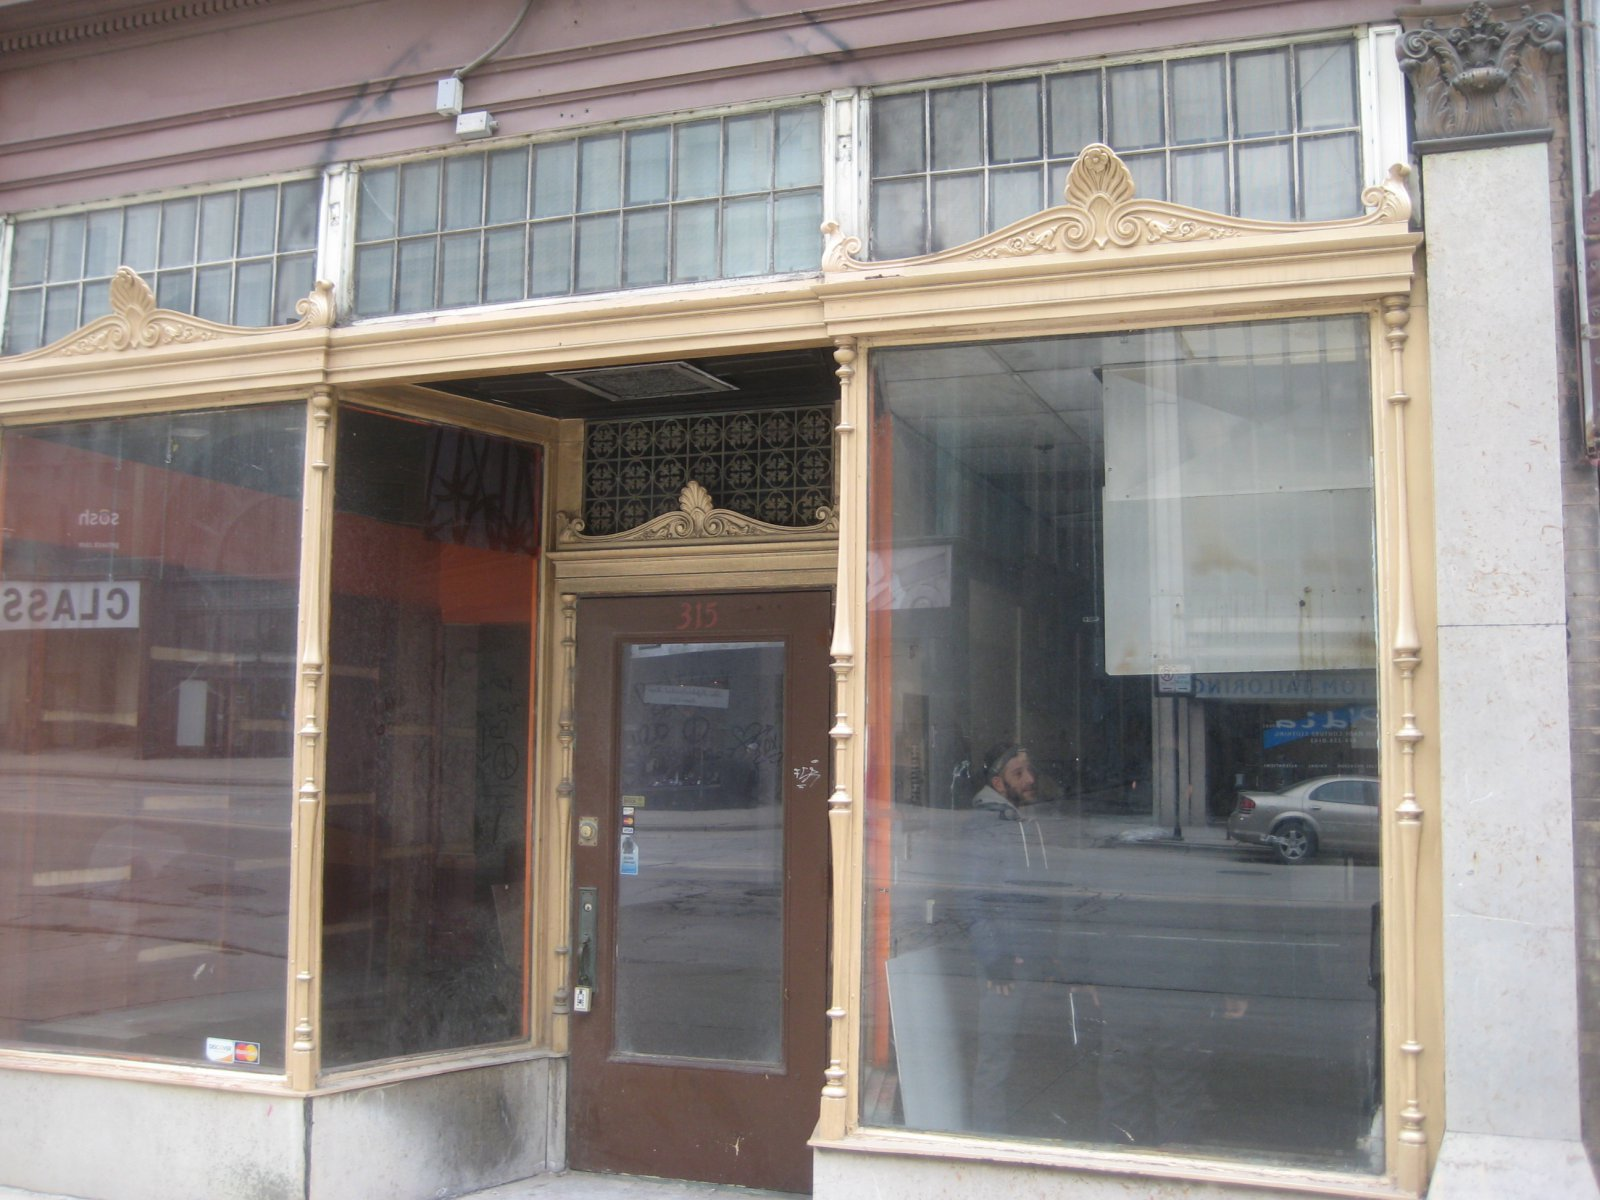 The copper-mullioned storefront is an excellent example of historic detail at the new Amilinda location on E. Wisconsin Ave.